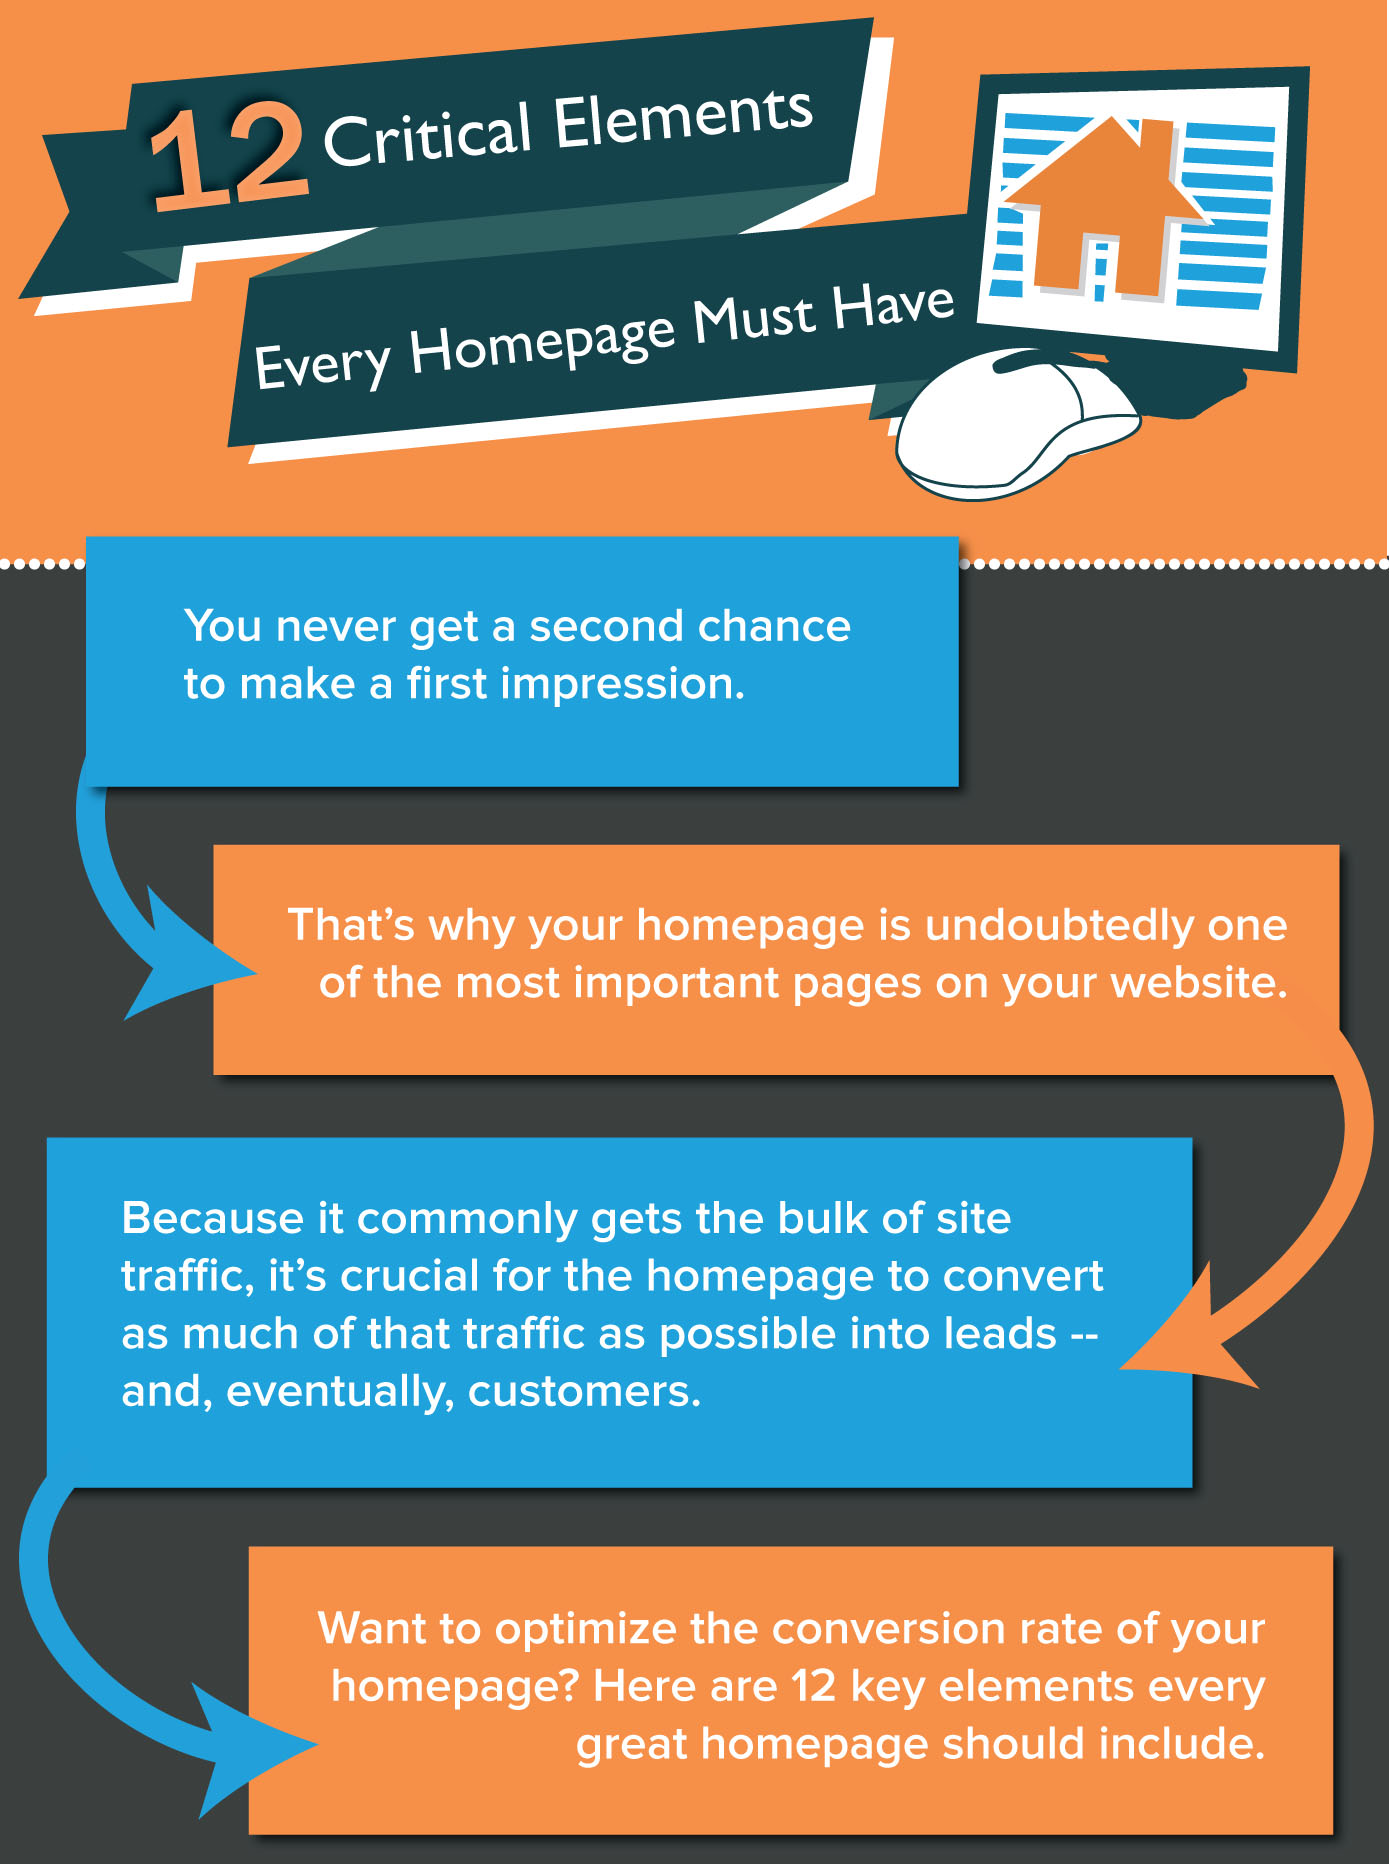 homepage 12 critical elements infographic  - Hubspot